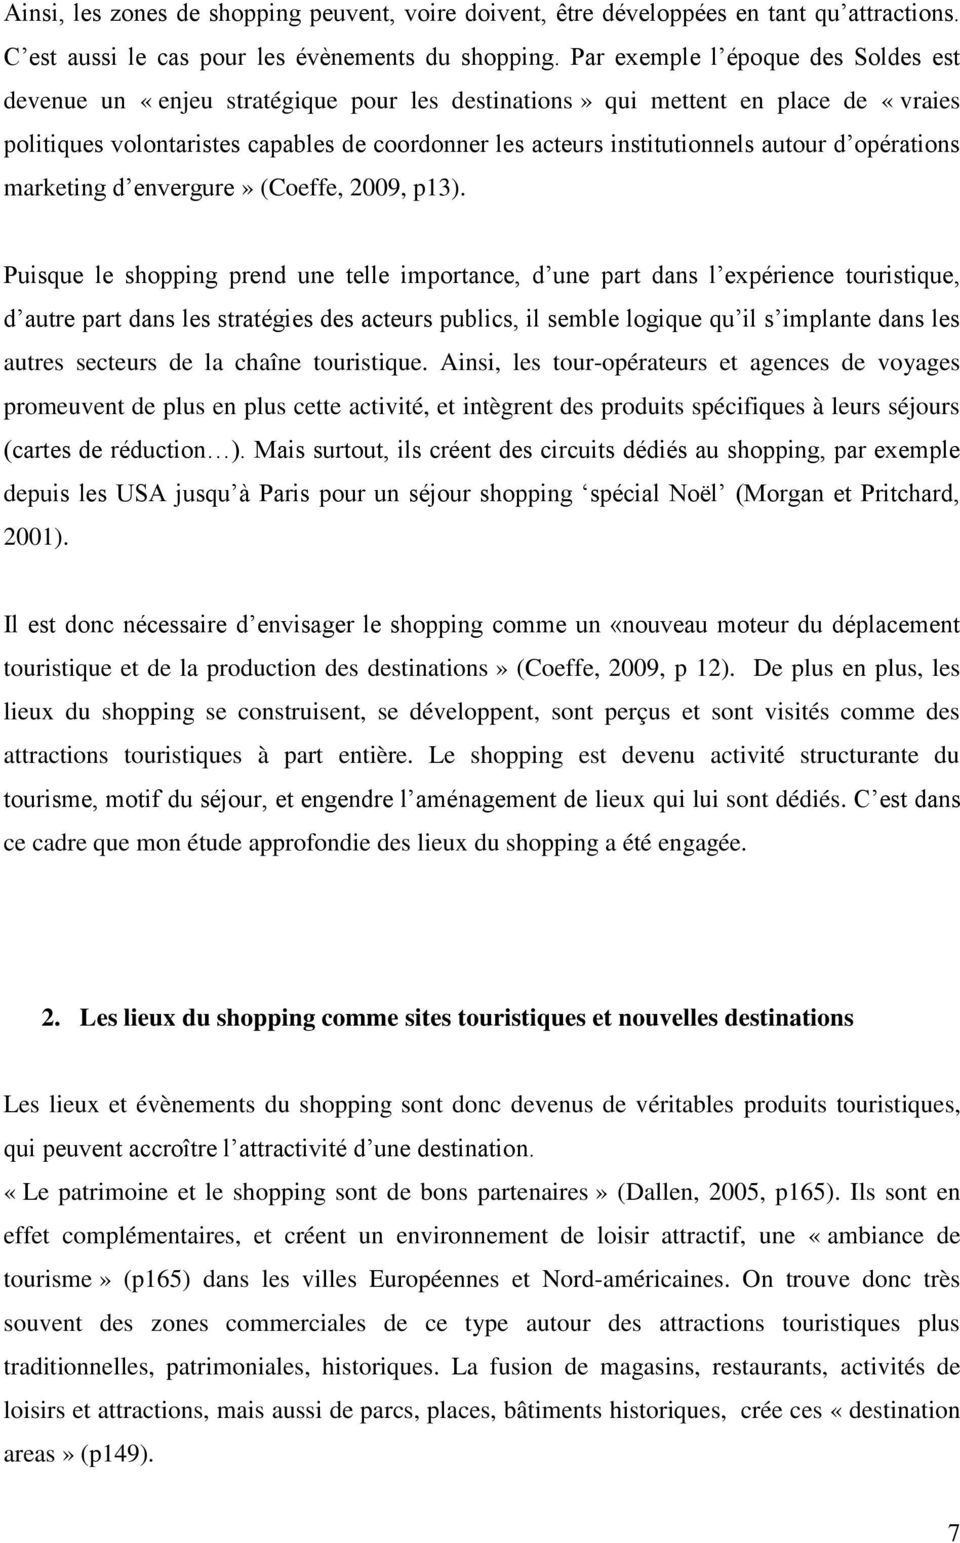 autour d opérations marketing d envergure» (Coeffe, 2009, p13).